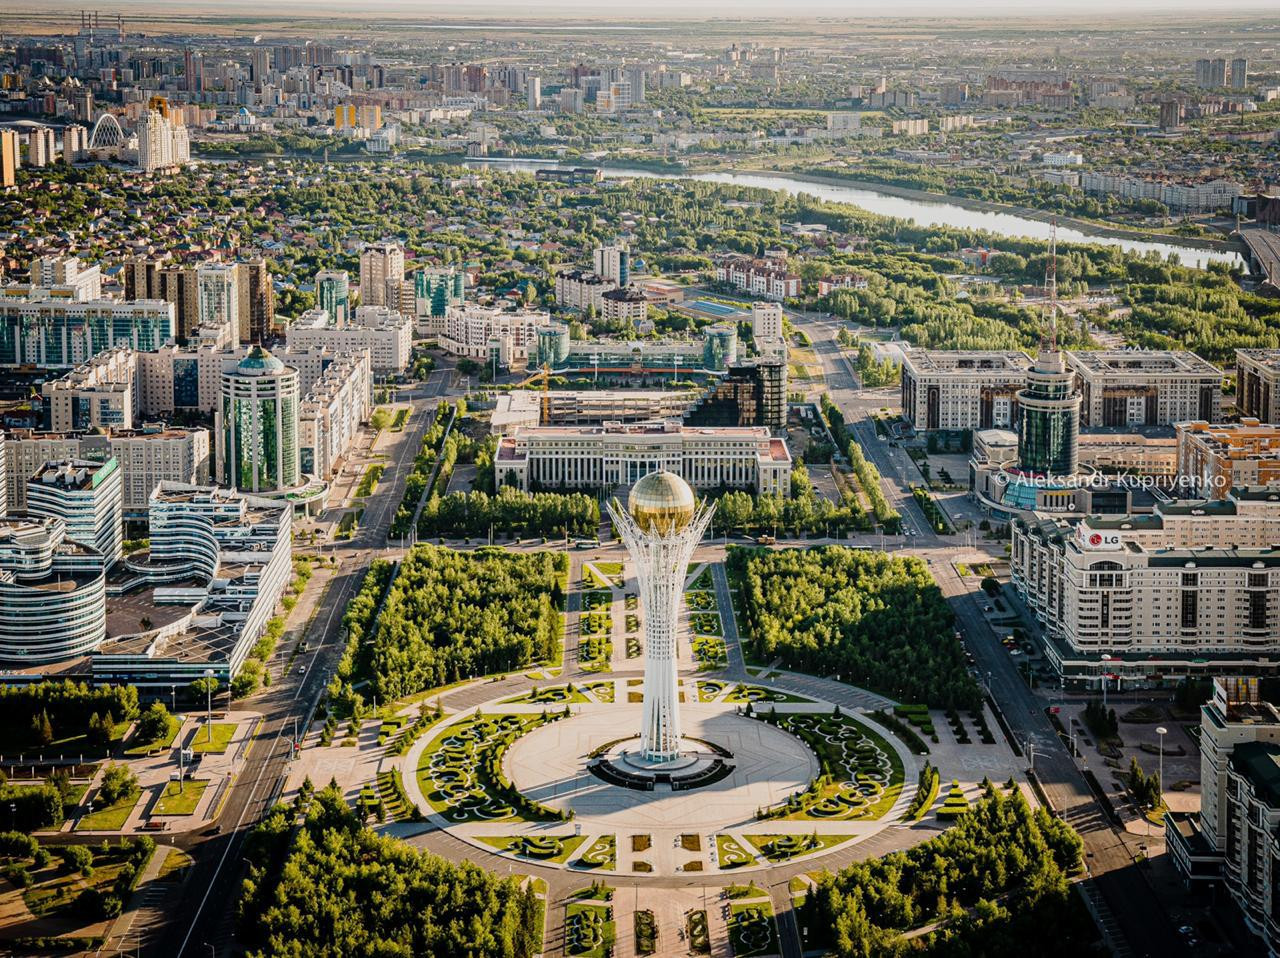 Kazakhstan To Reintroduce Two Week Lockdown To Deal With Covid 19 Spike The Astana Times